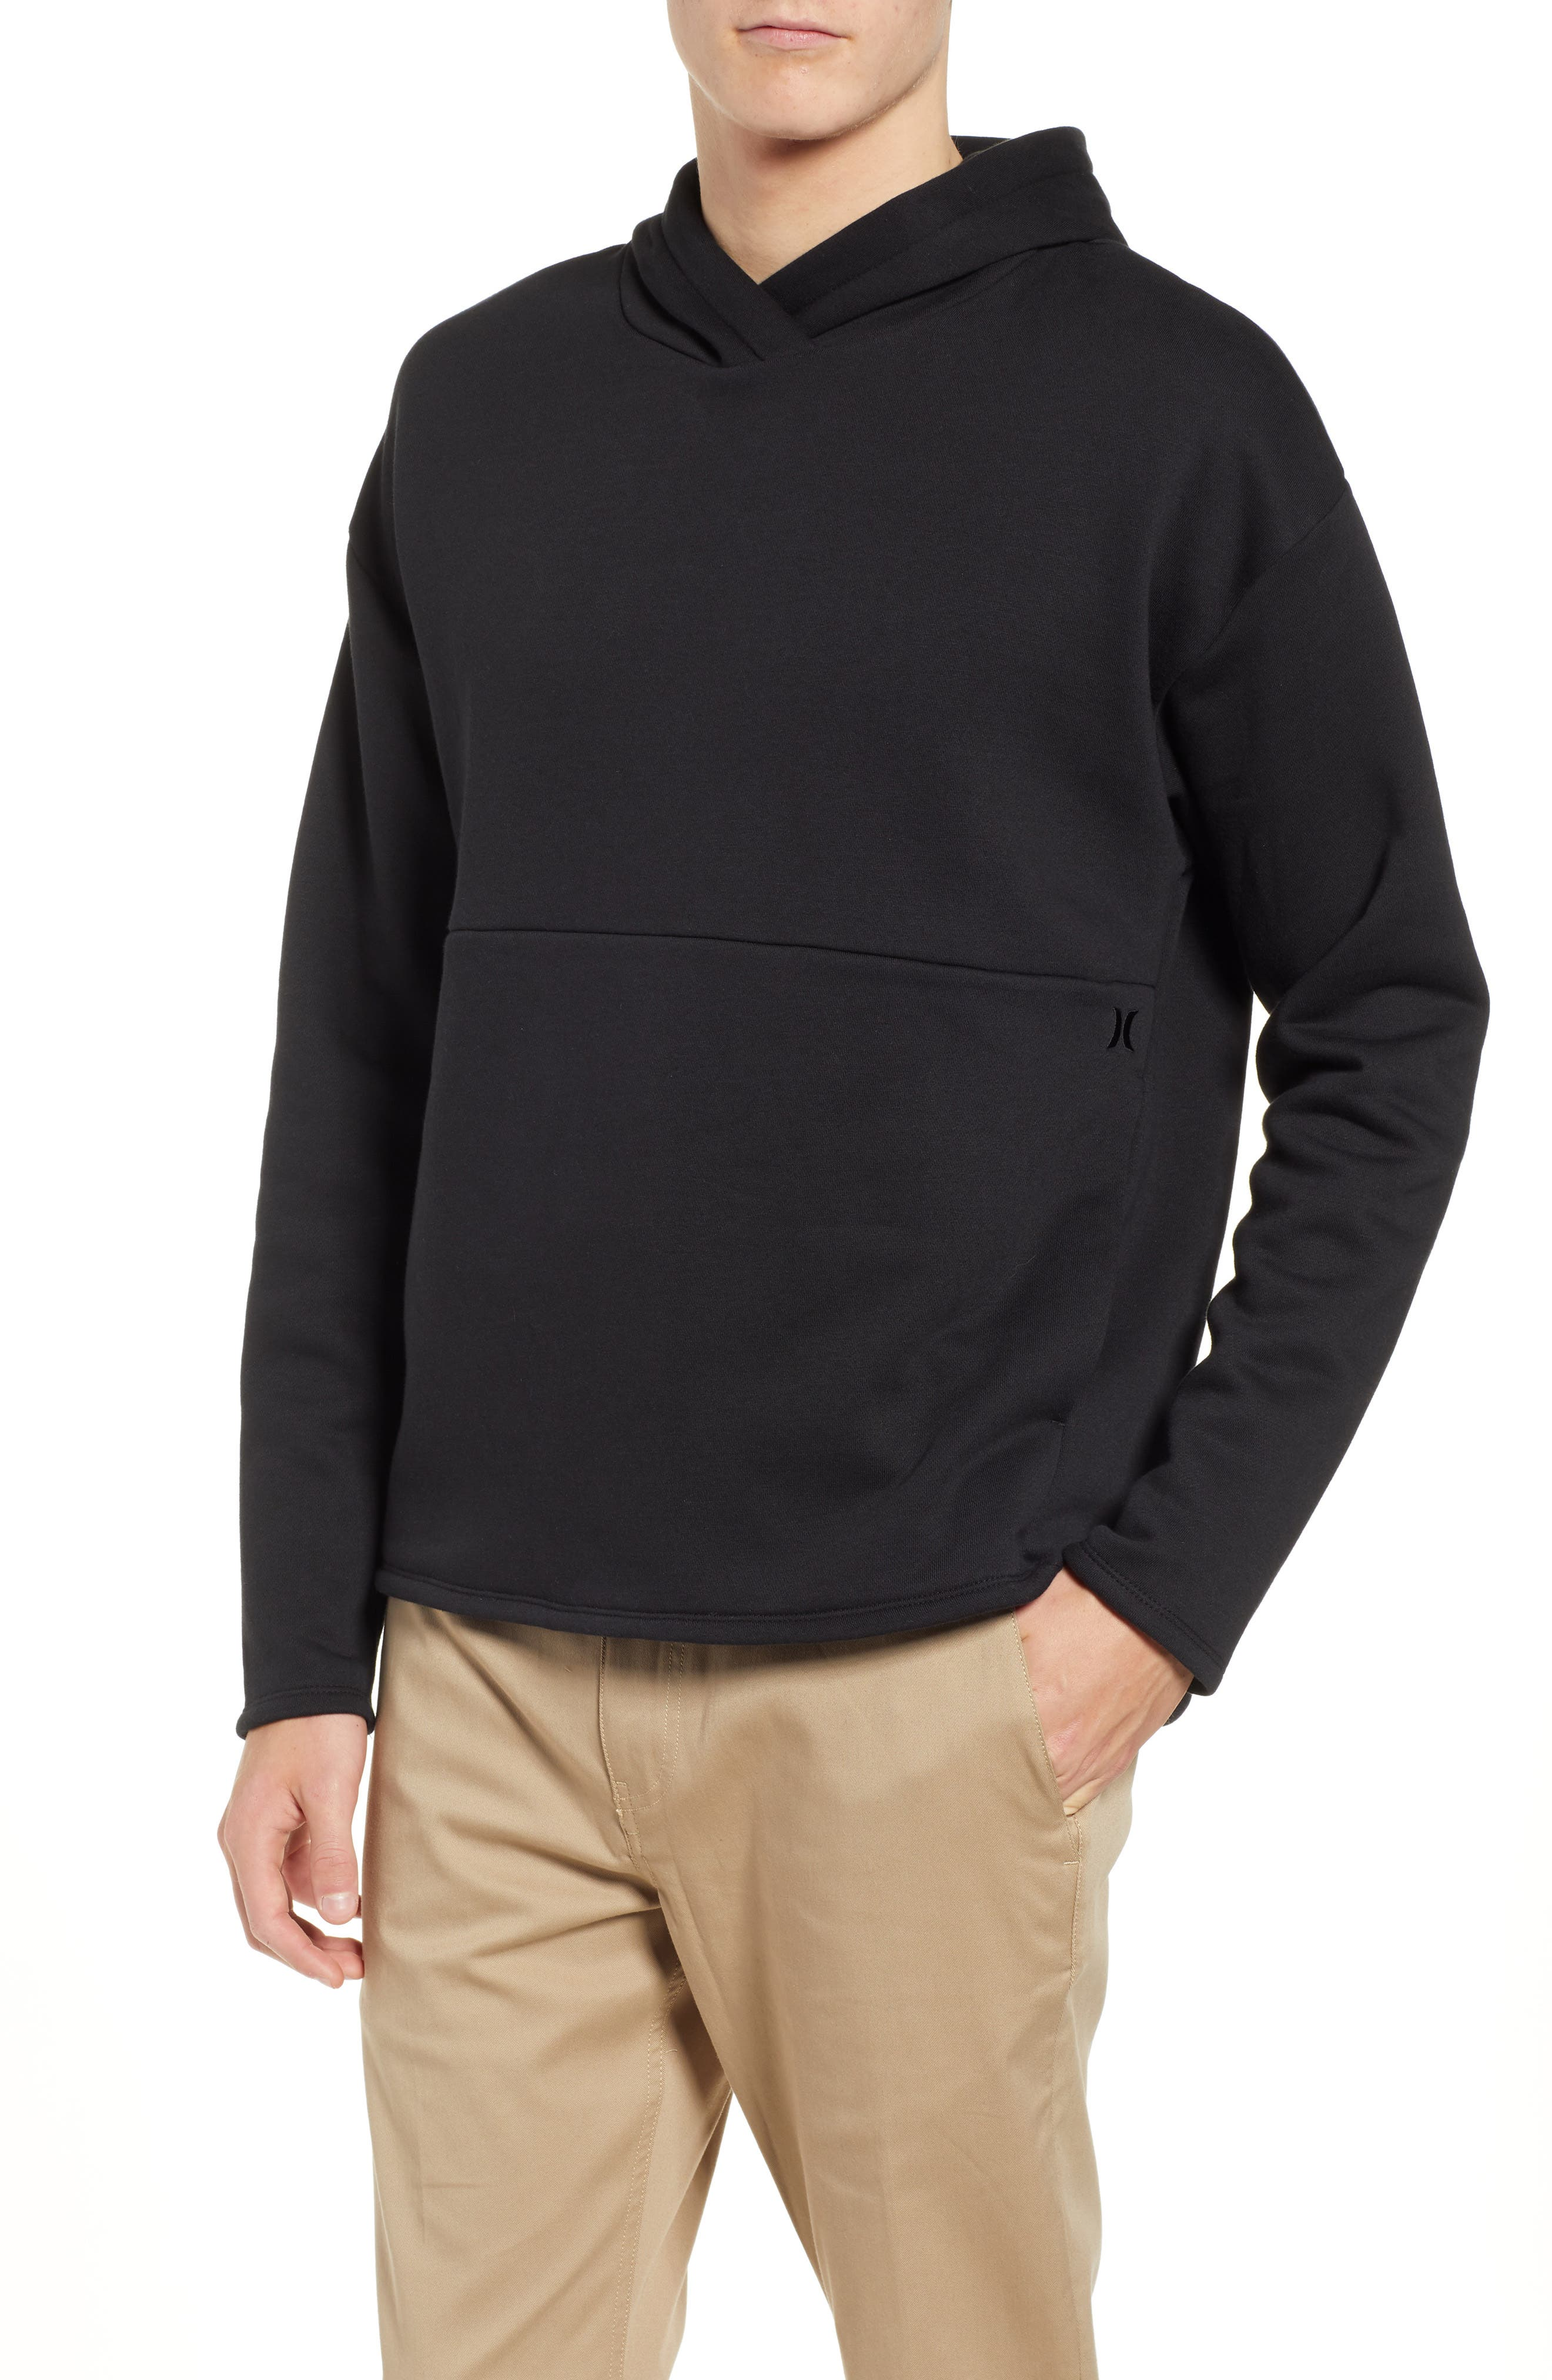 Hurley Surf Check Icon Pullover Hoodie, Black